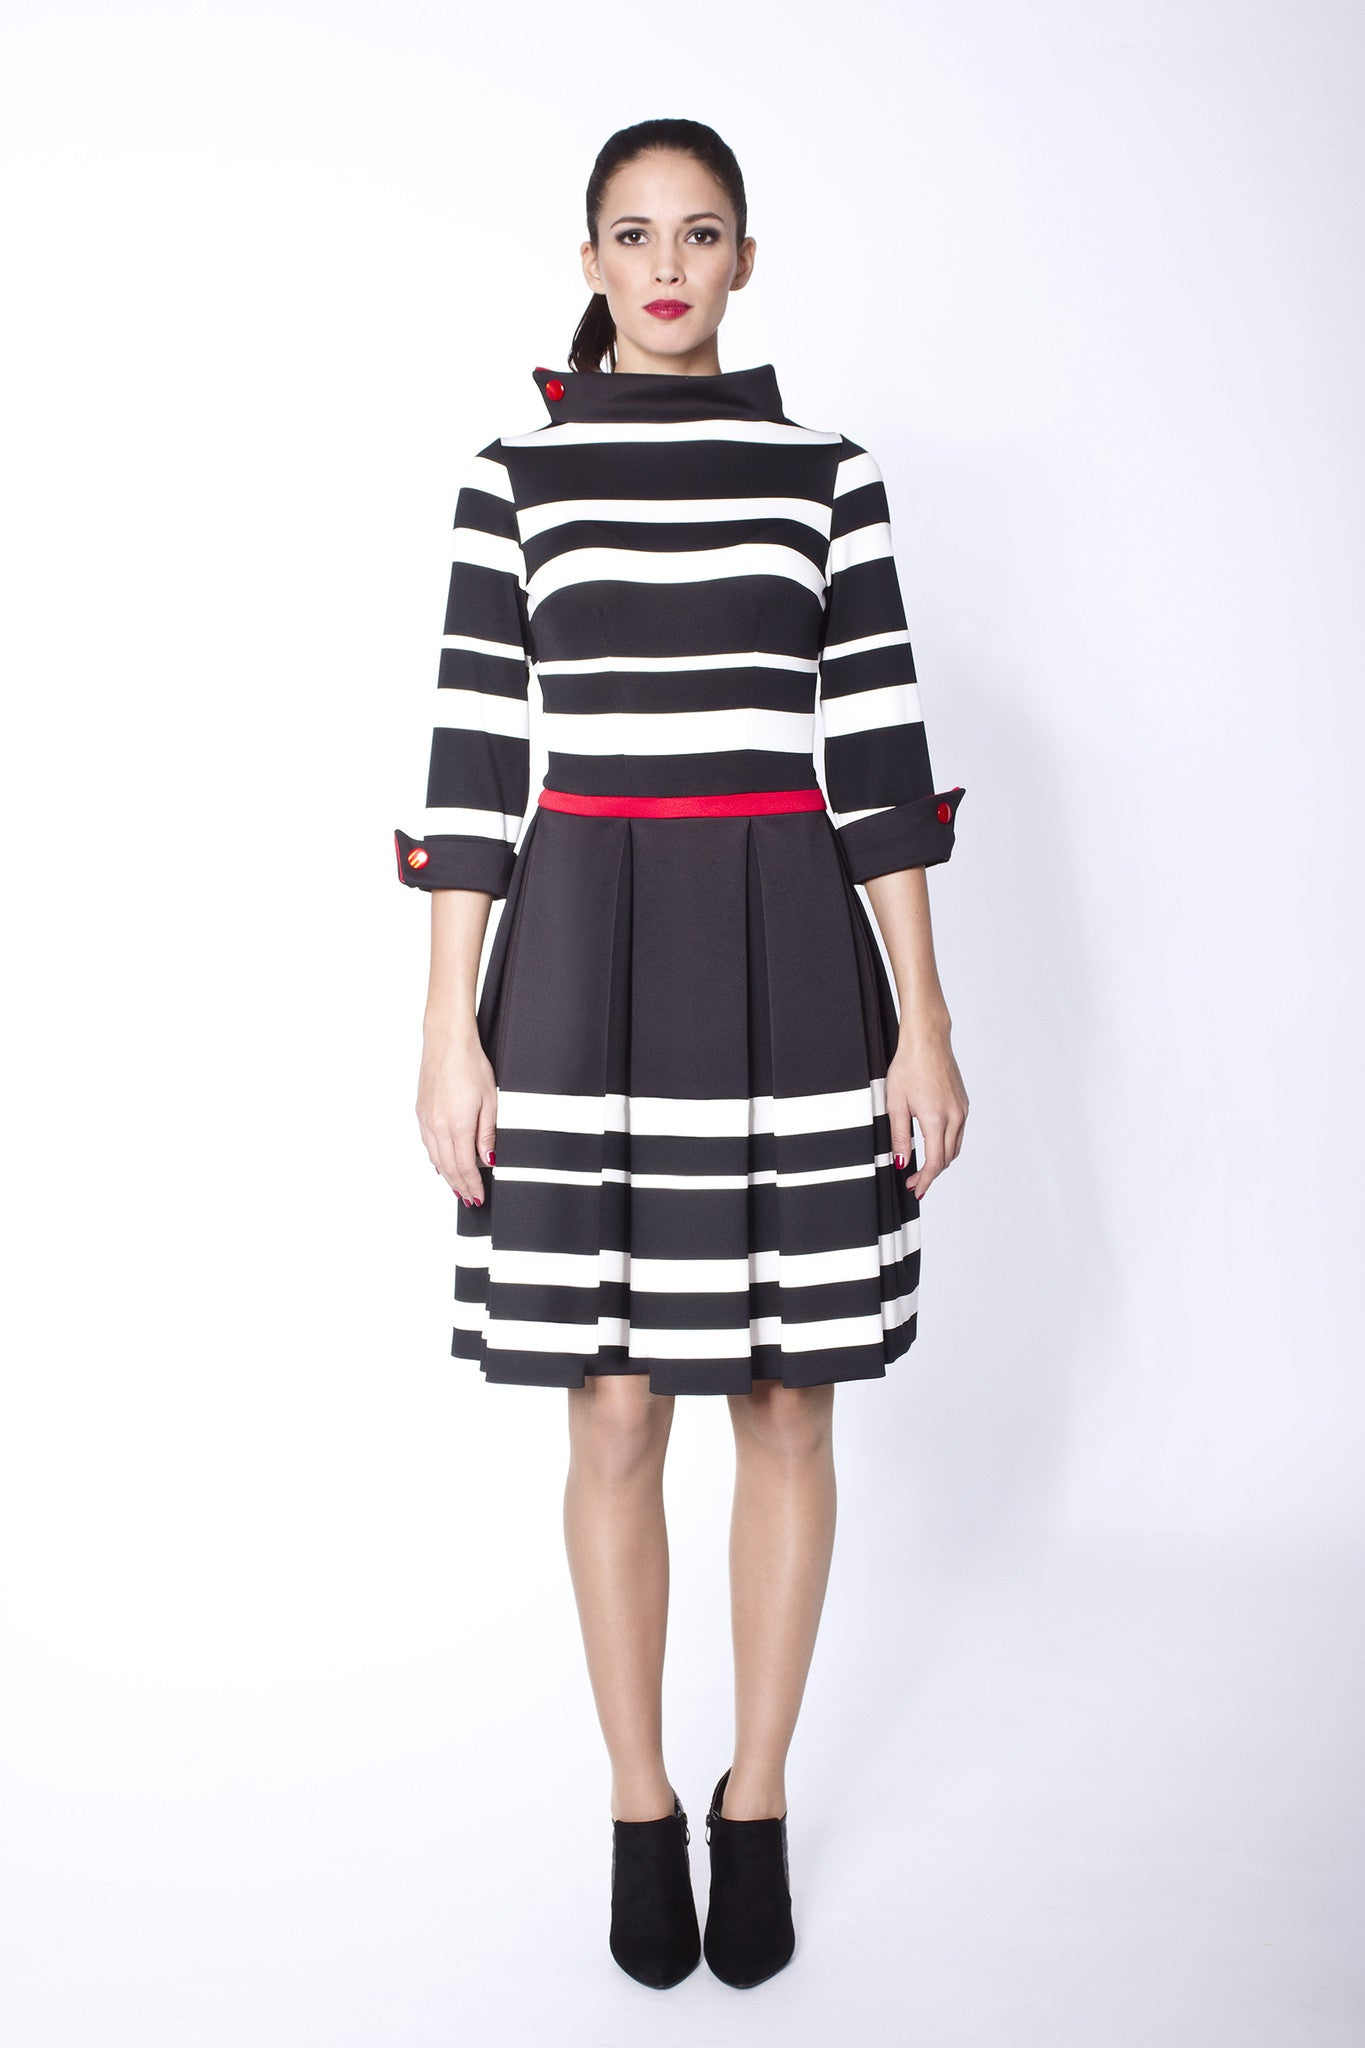 B&W dress with red waistline and red buttons on the collar and the cuffs